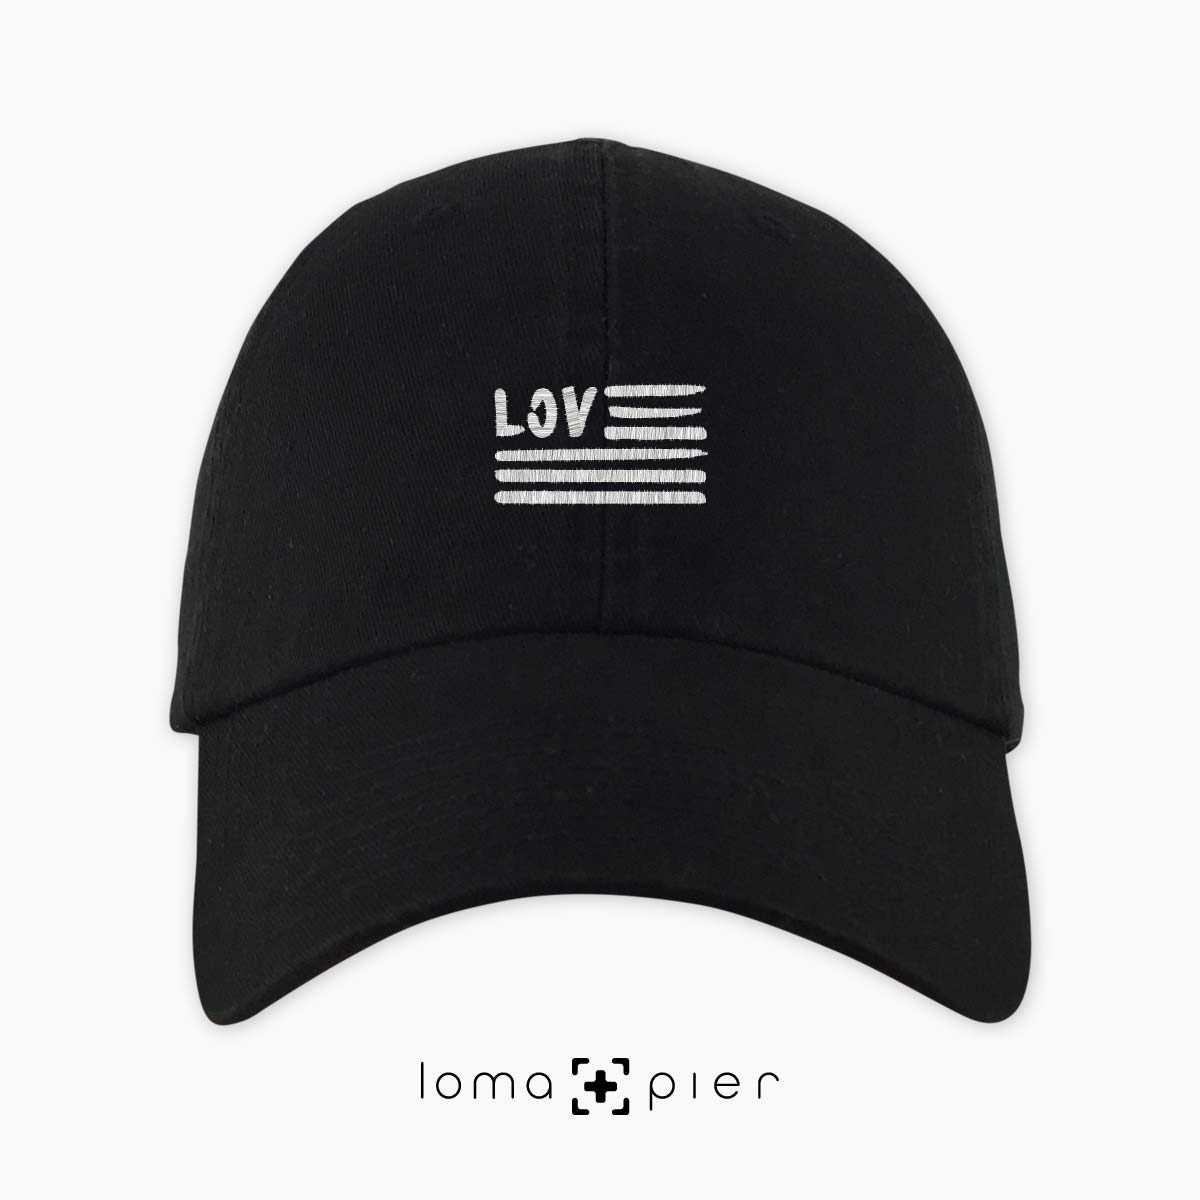 AMERICAN LOVE icon embroidered on a black unstructured dad hat with white thread by loma+pier hat store made in the USA